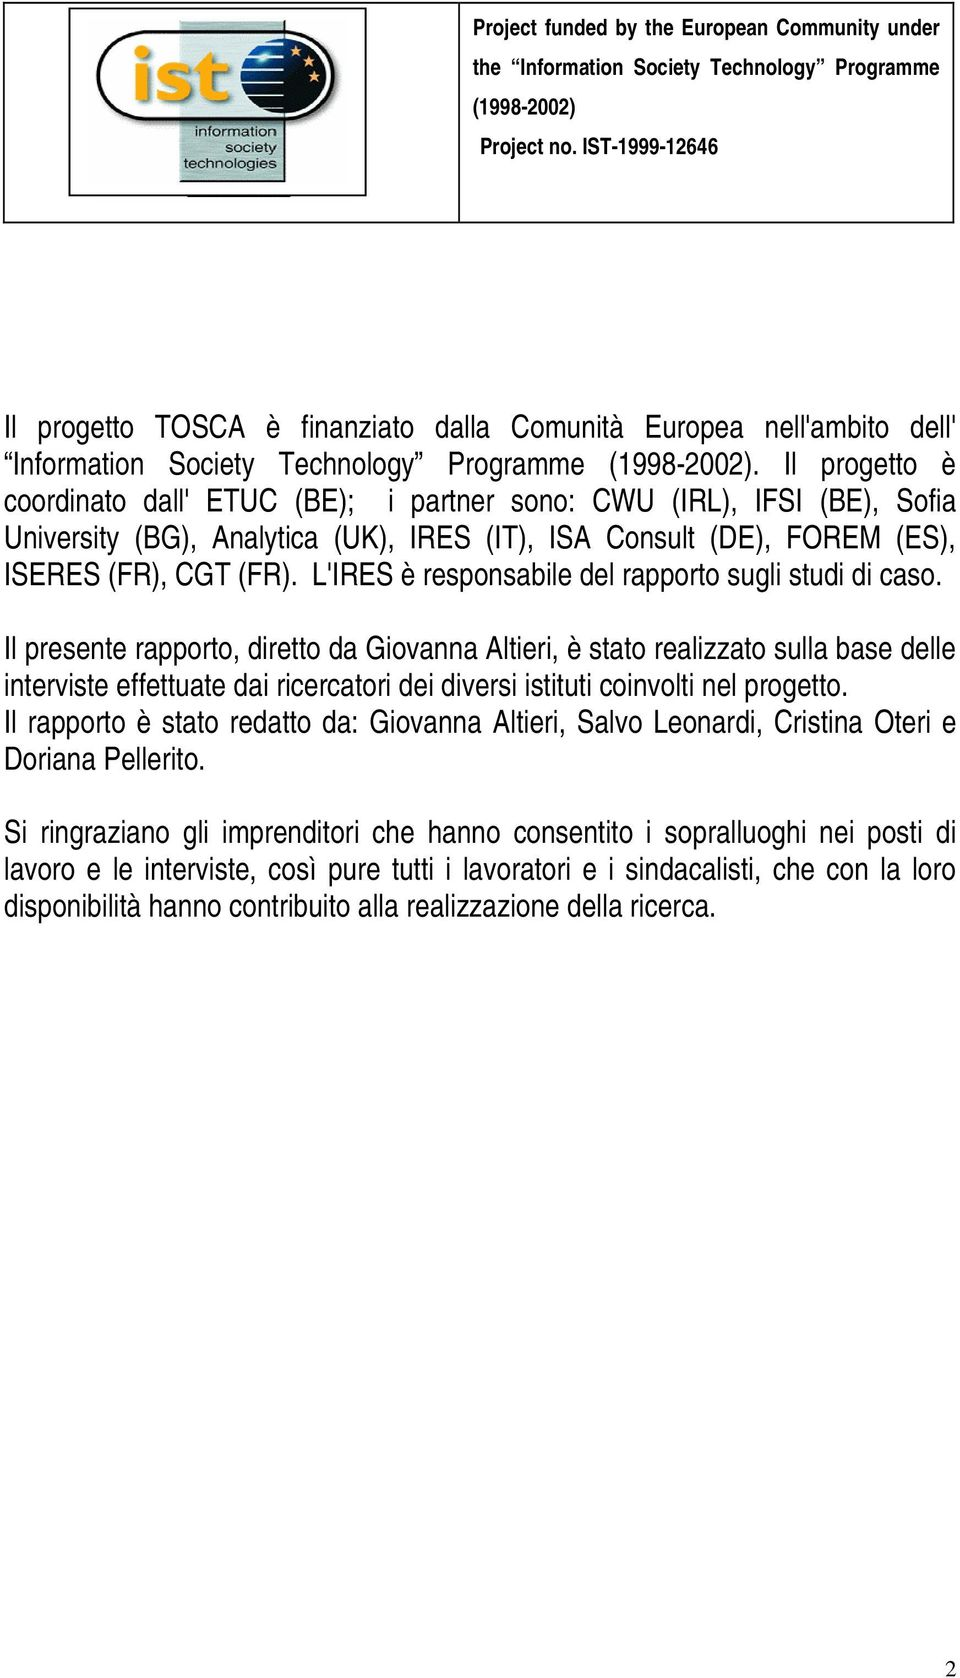 Il progetto è coordinato dall' ETUC (BE); i partner sono: CWU (IRL), IFSI (BE), Sofia University (BG), Analytica (UK), IRES (IT), ISA Consult (DE), FOREM (ES), ISERES (FR), CGT (FR).